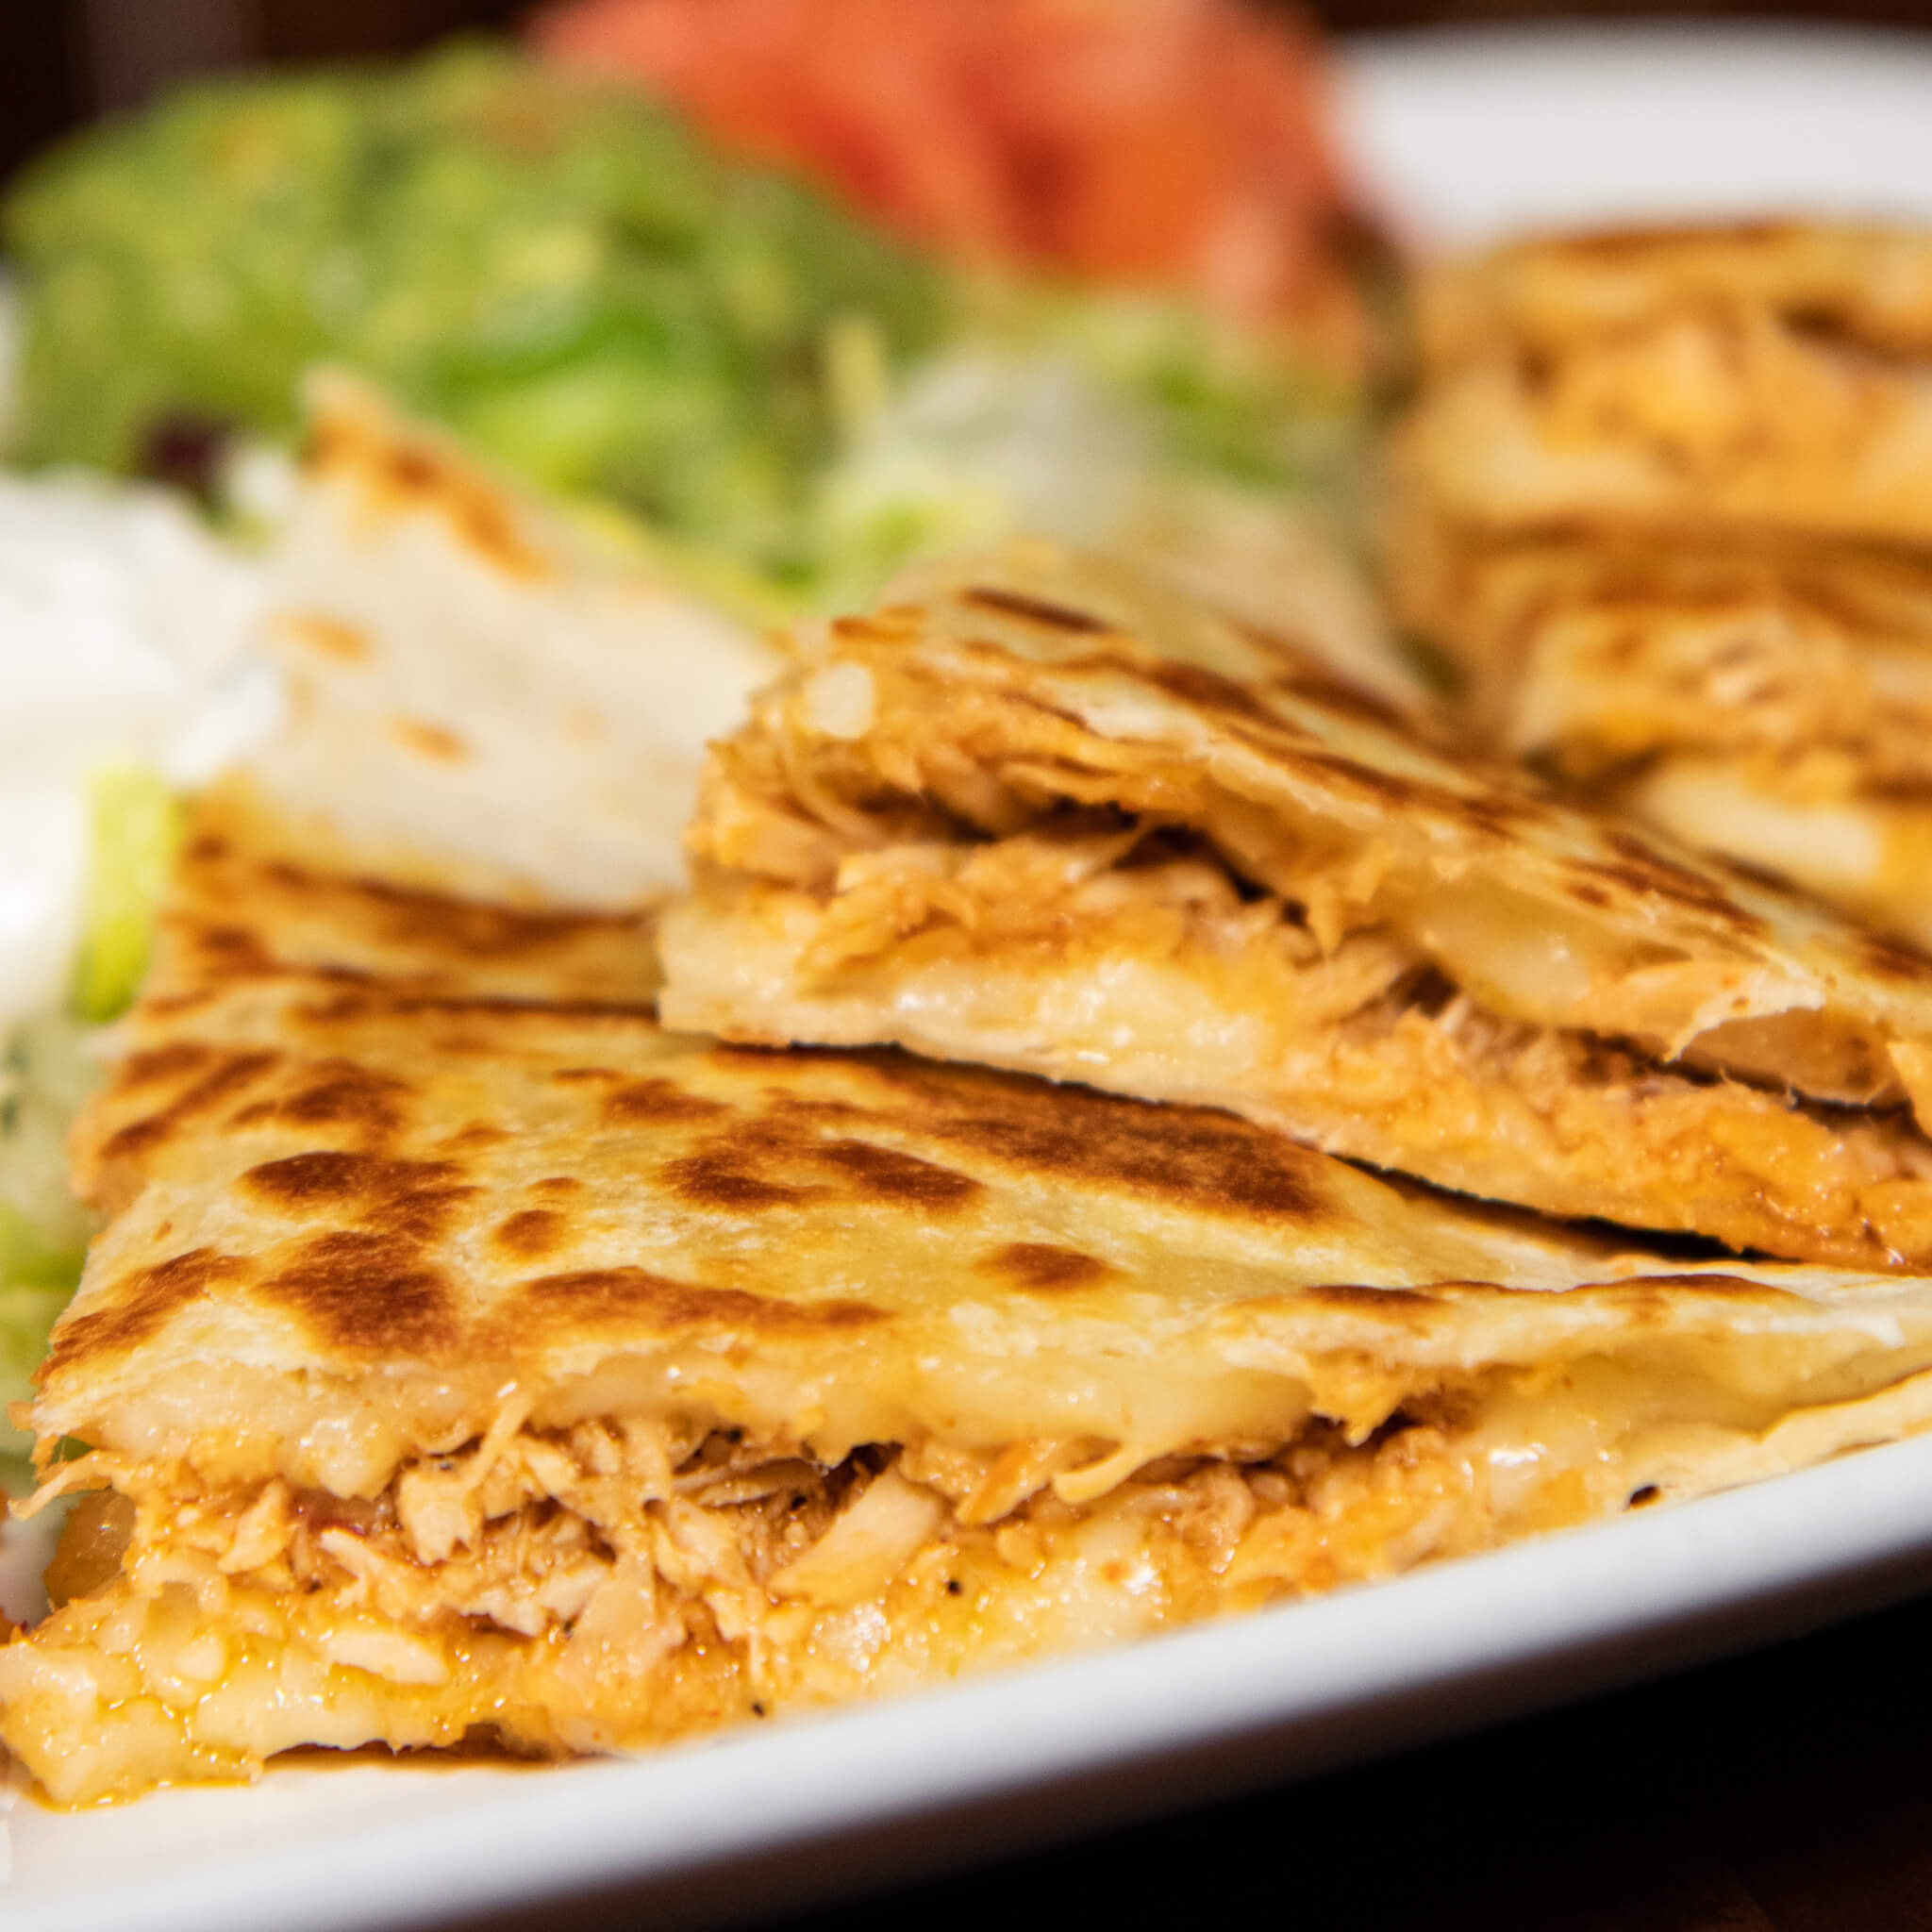 $1.99 Shredded Chicken or Ground Beef Quesadillas